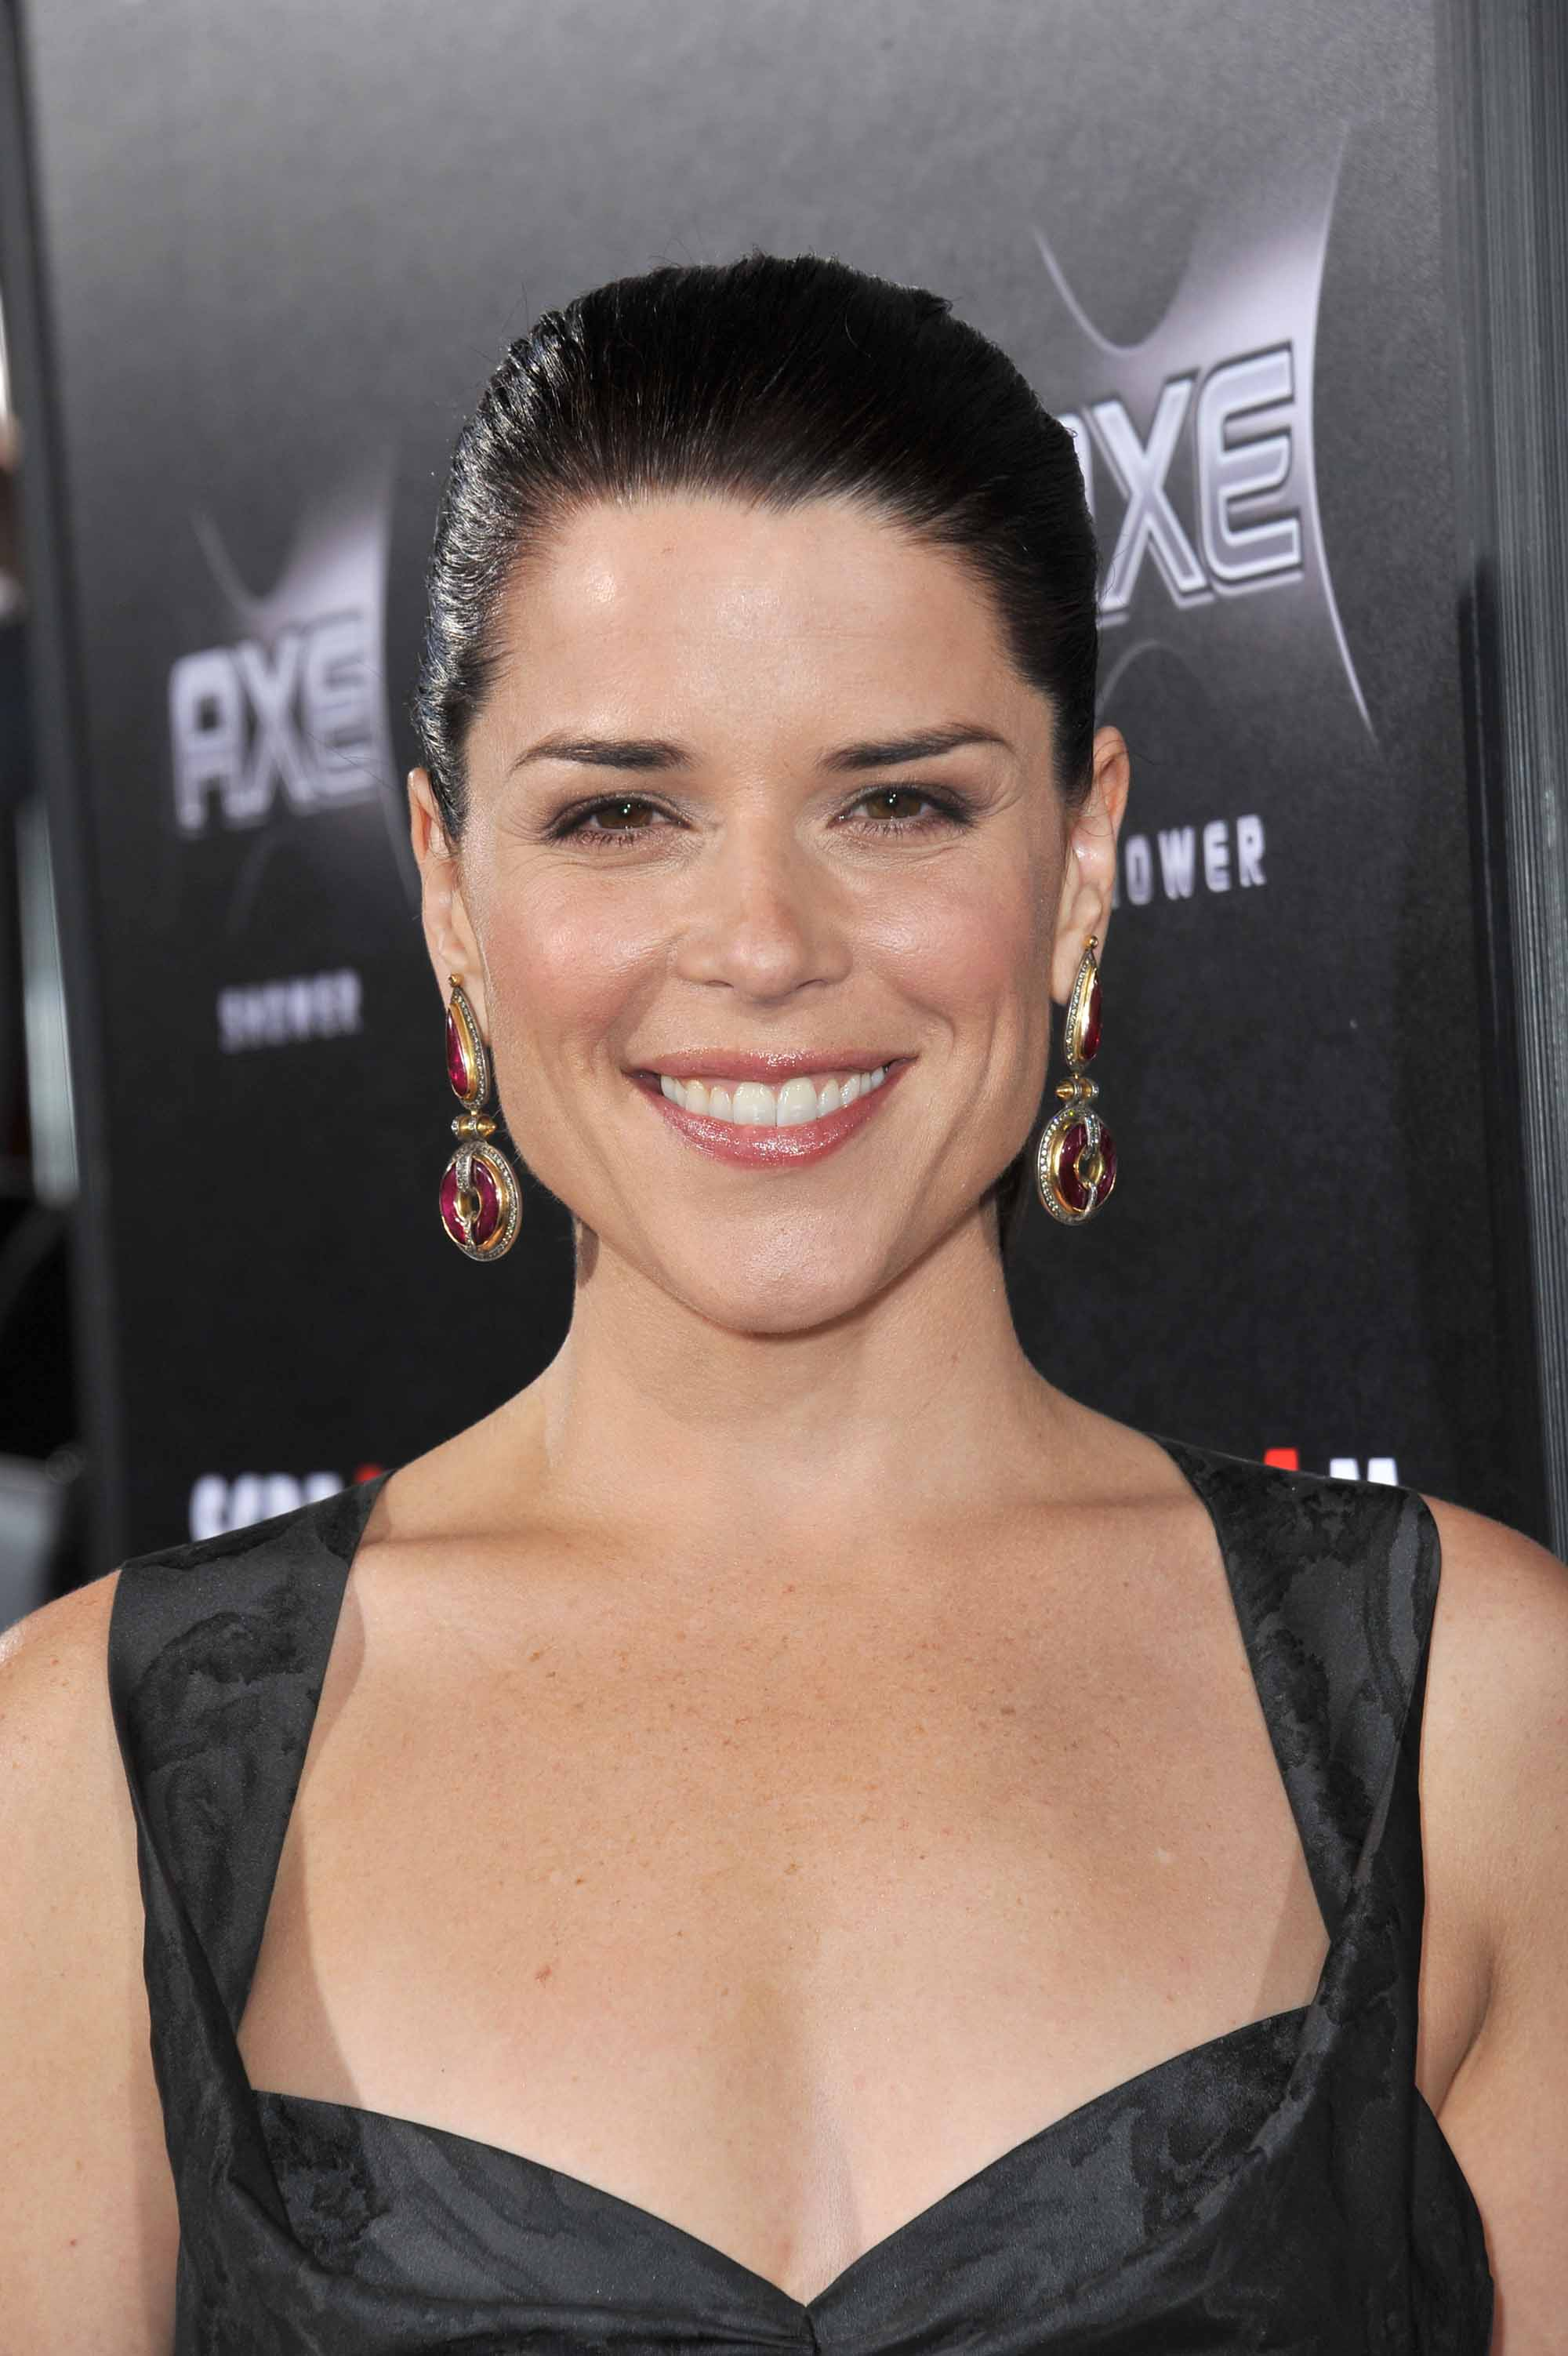 neve campbell fan site